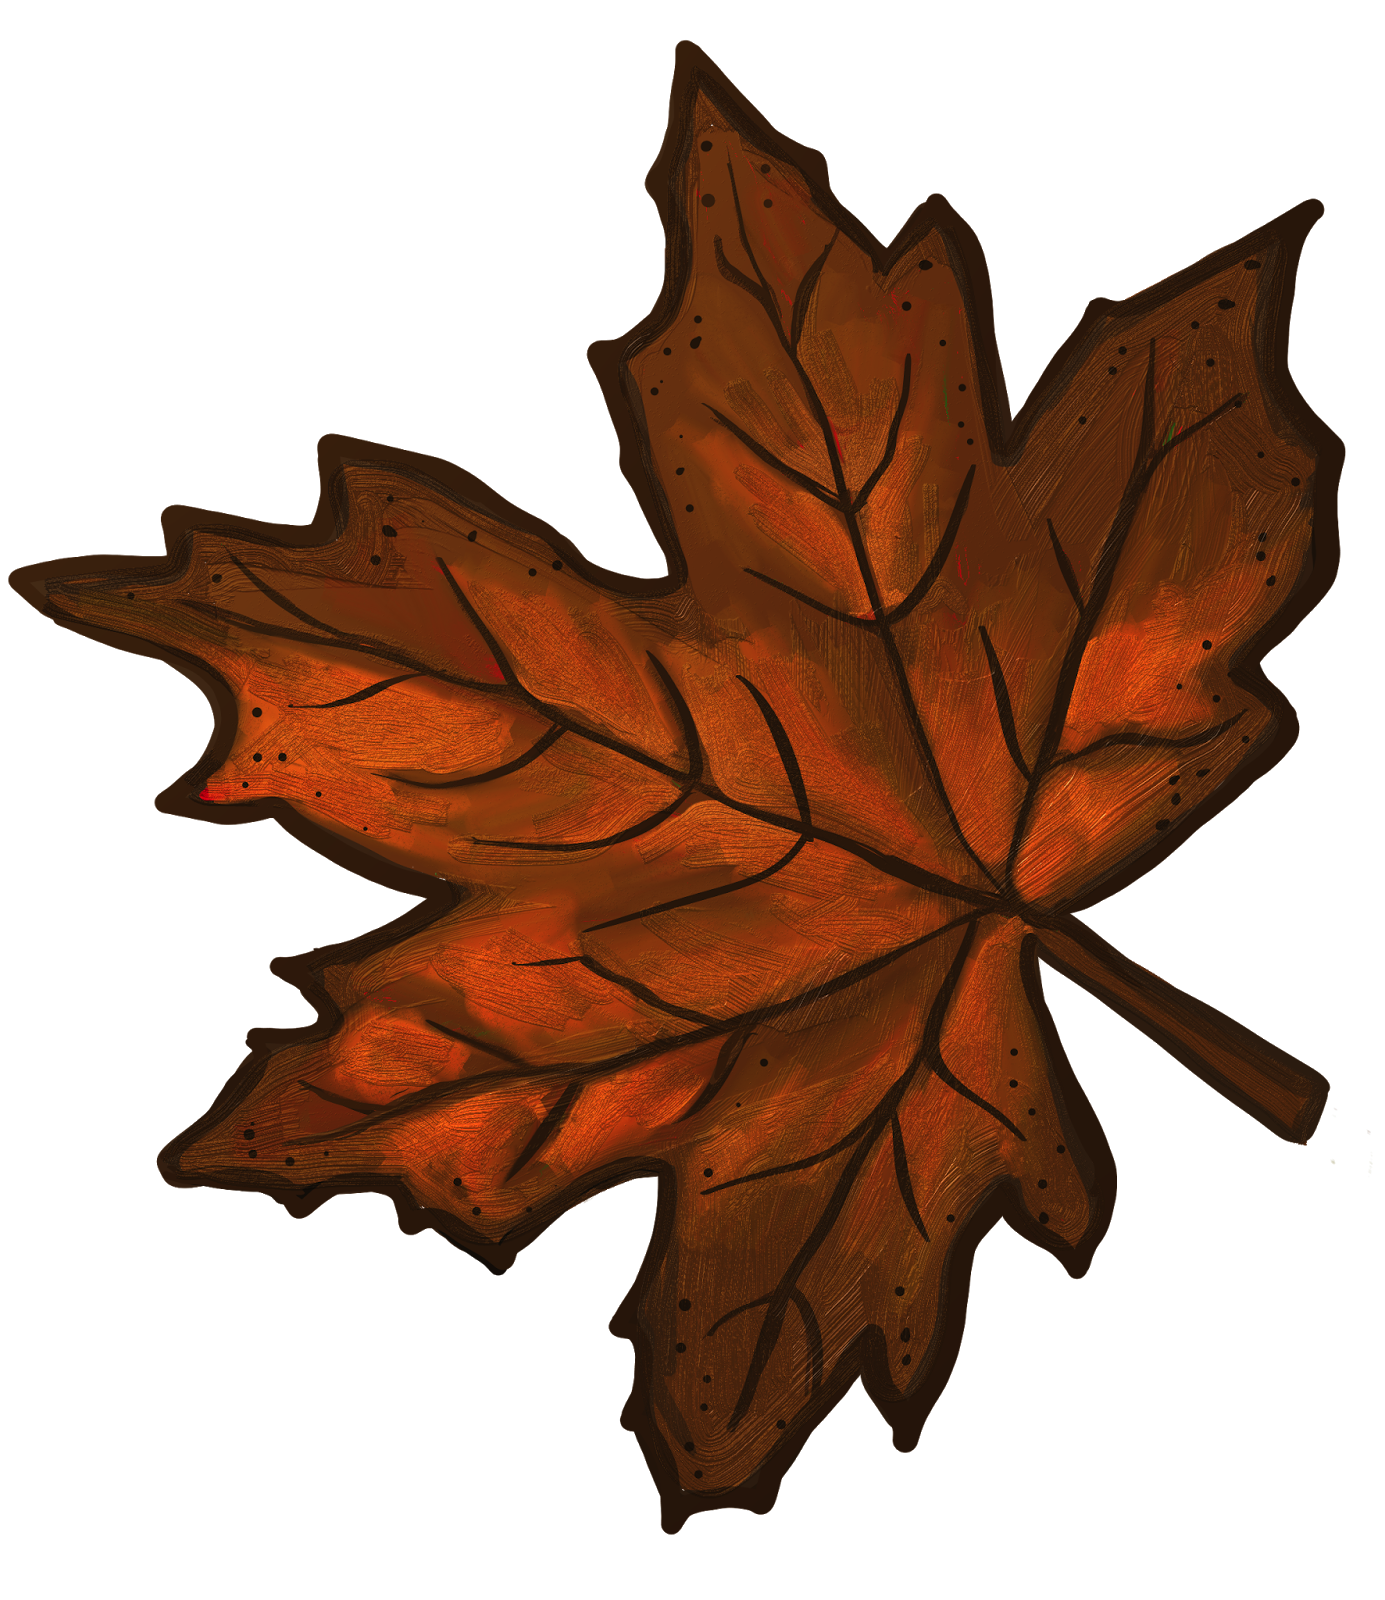 Leaf clipart kid. Maple brown png a